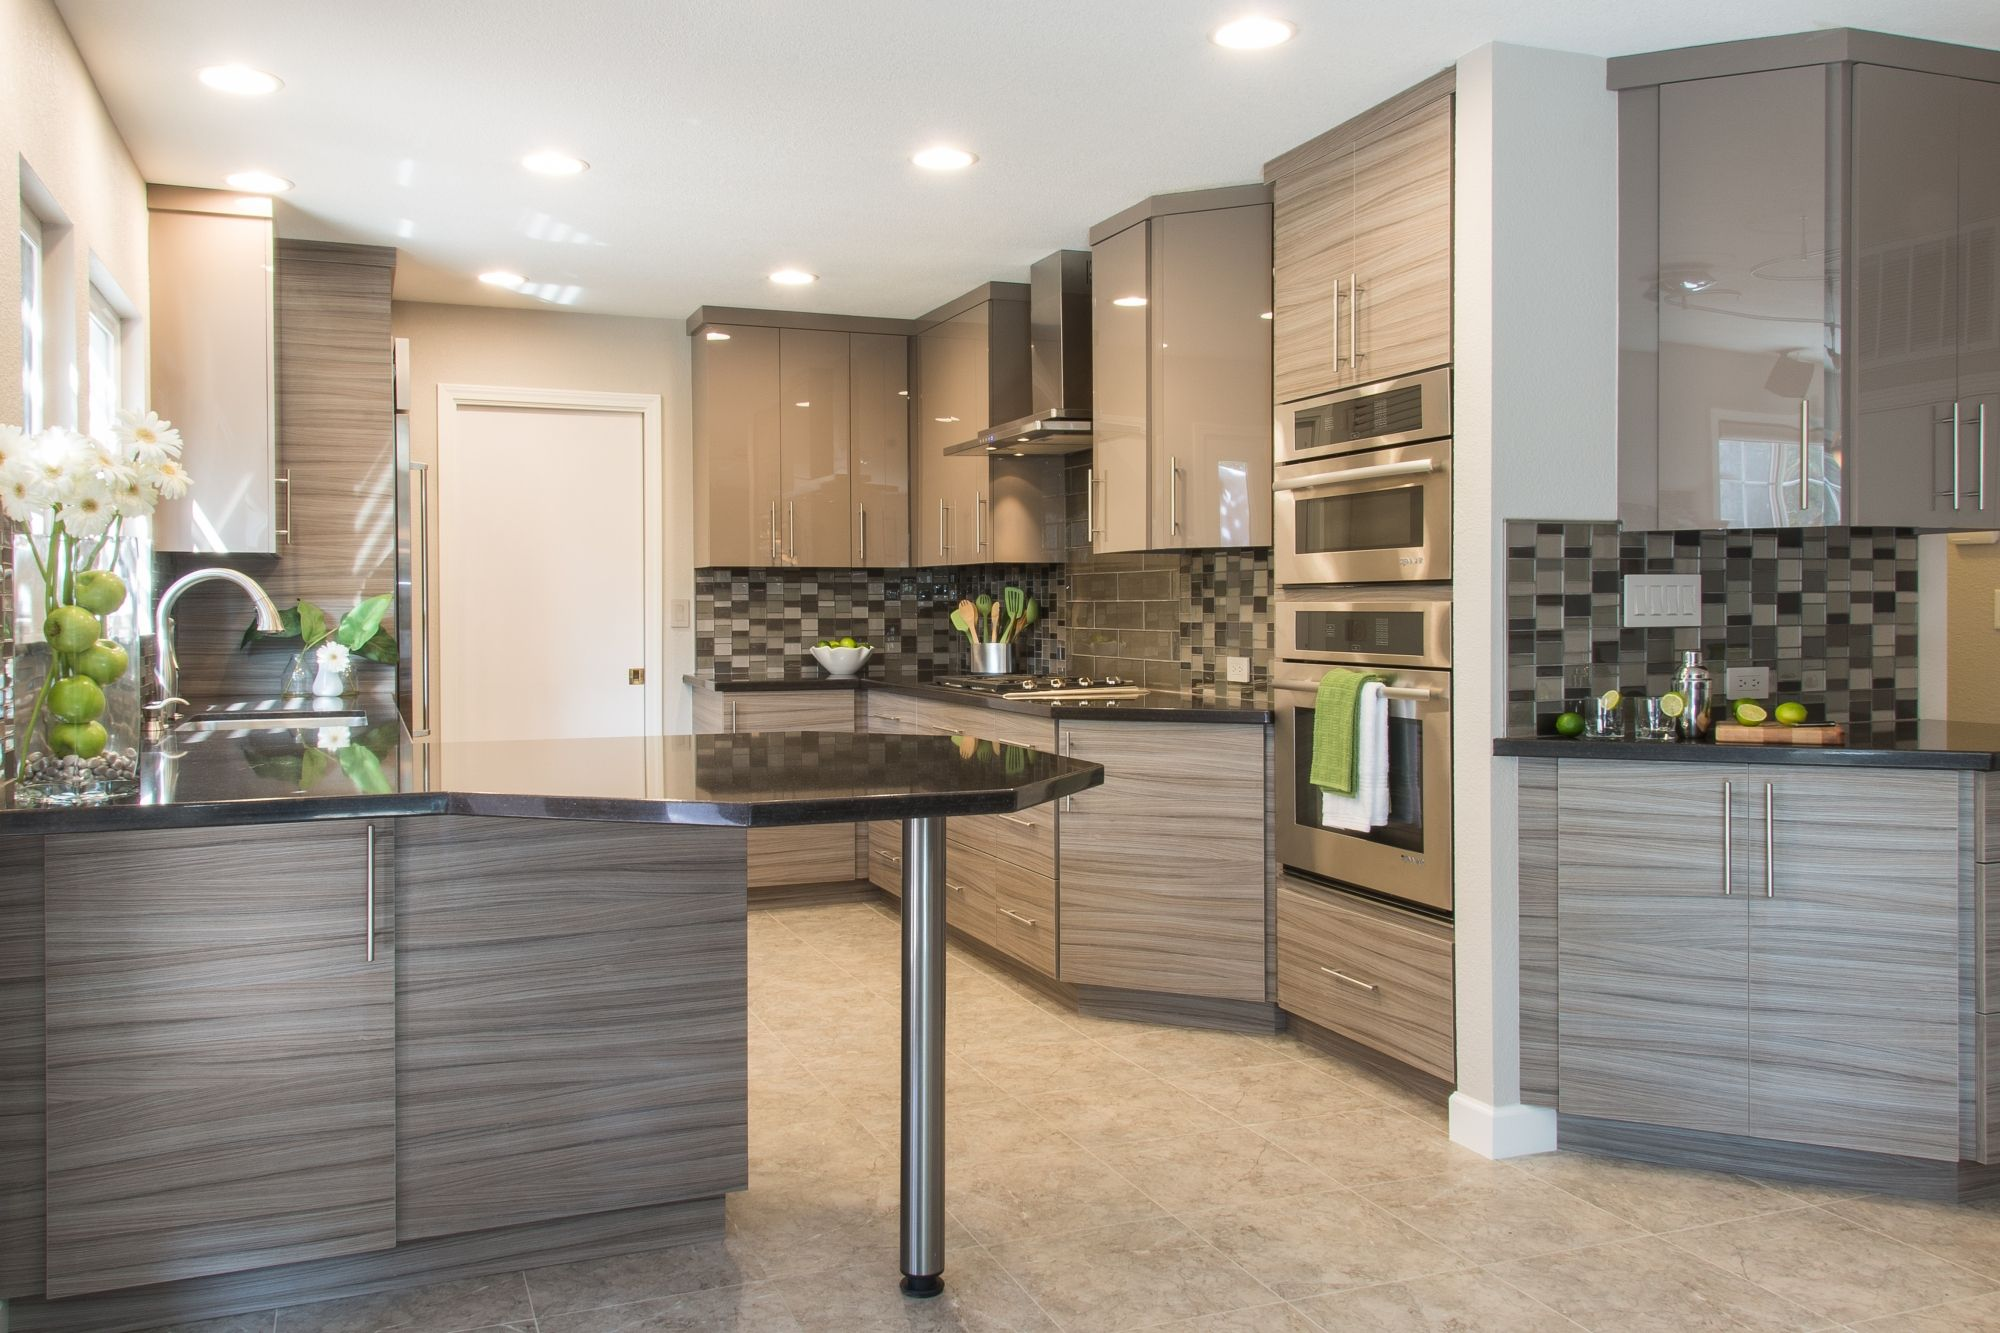 Sunnyvale Kitchen Remodel Cultivate Com Luxury Kitchen Cabinets Luxury Kitchen Cost Of Kitchen Cabinets